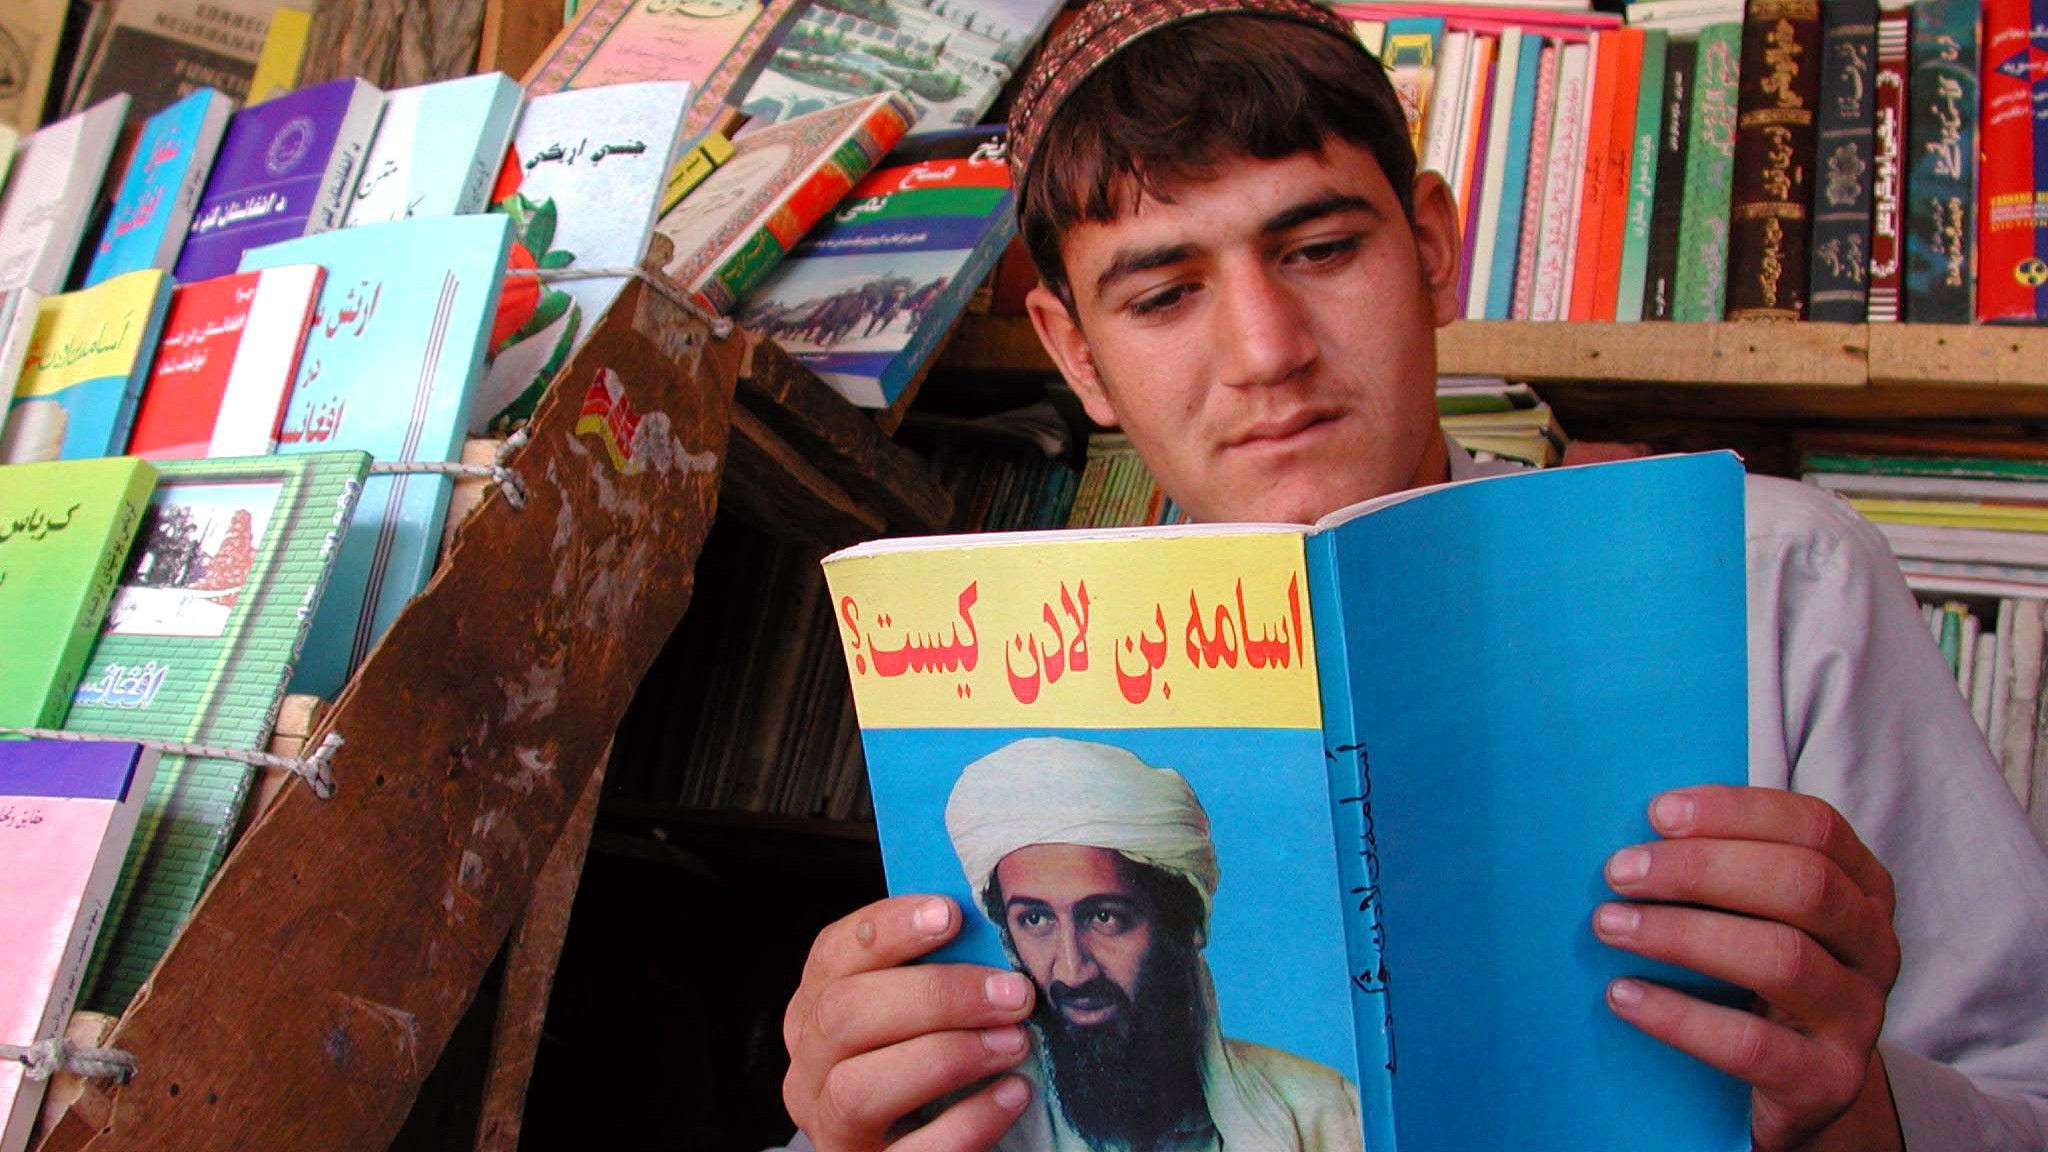 An Afghan book-seller reads a book on Saudi-born dissident, Osama bin Laden in the capital on September 17, 2001. The United States have named bin Laden as the prime suspect in the co-ordinated attacks against America last week and has threatened to launch an assault on Afghanistan to punish him. Afghans are nervous and worried about the attack as bin Laden denies links with the deadly incidents.